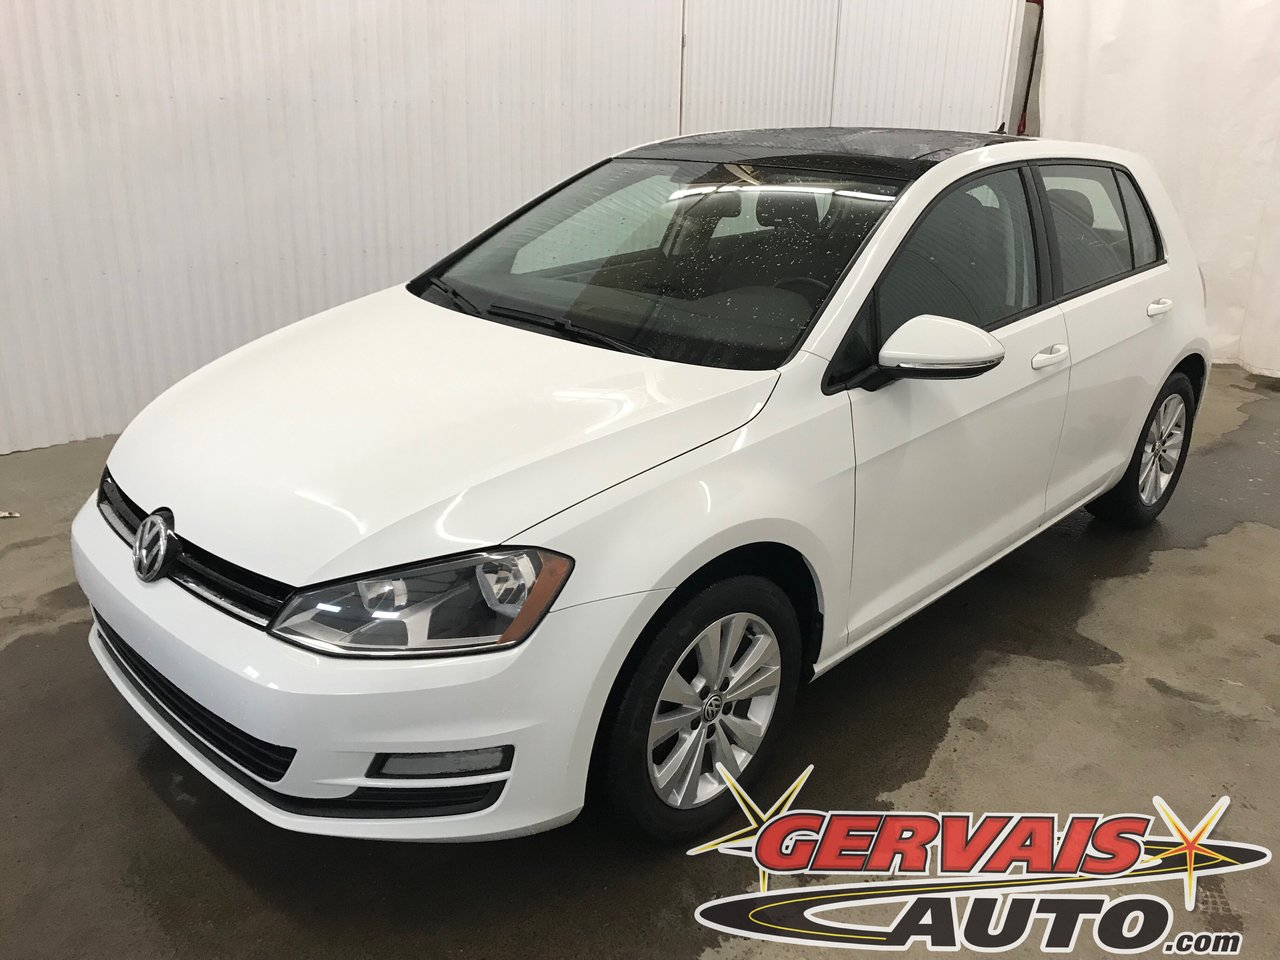 Volkswagen Golf 2015 Comfortline Tsi Cuir Toit Ouvrant Cam?ra MAGS